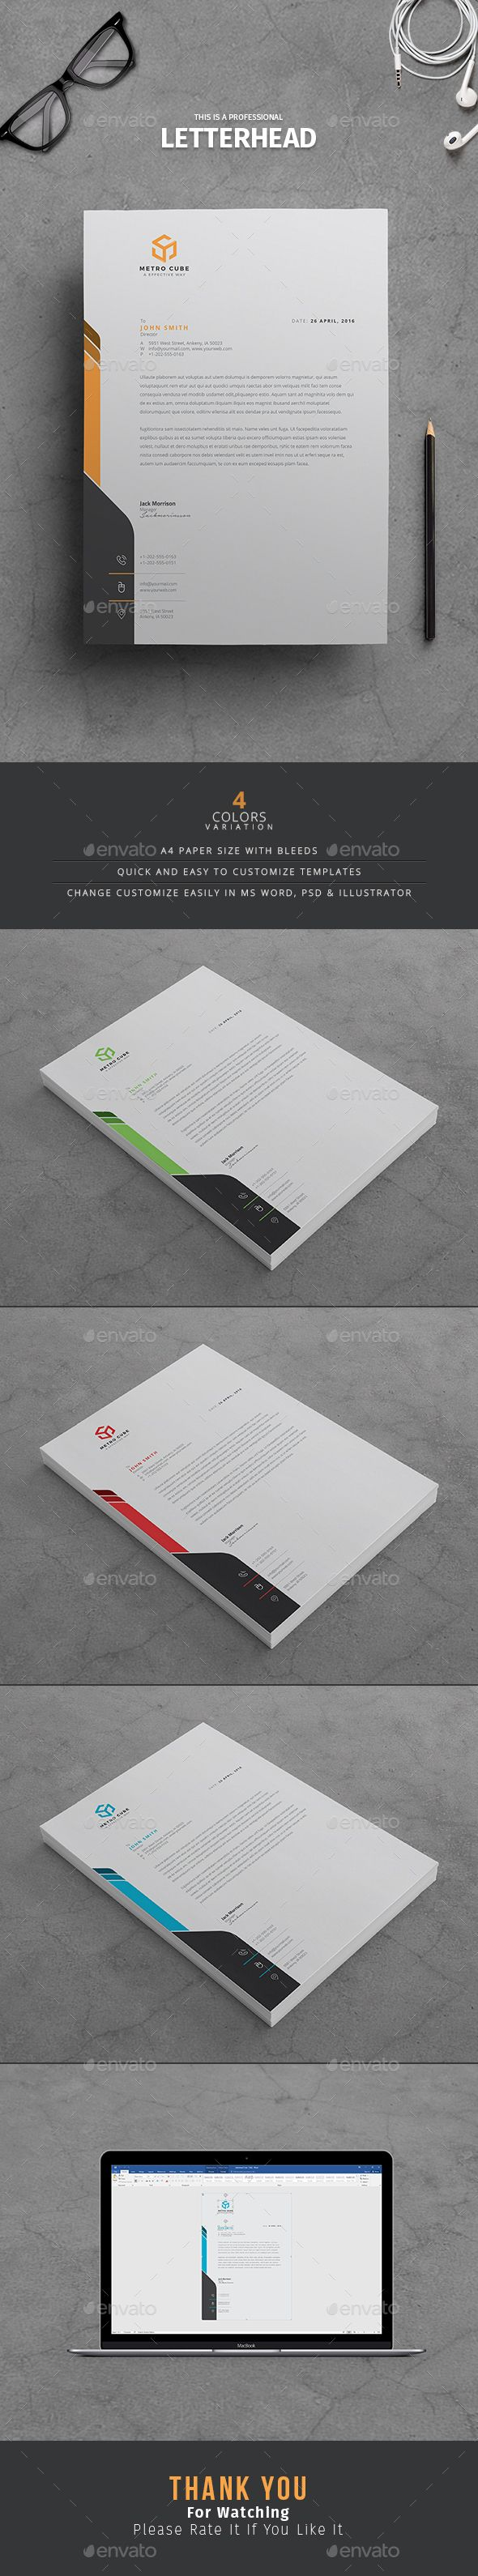 Letterhead Template PSD, Vector EPS, AI Illustrator, MS Word